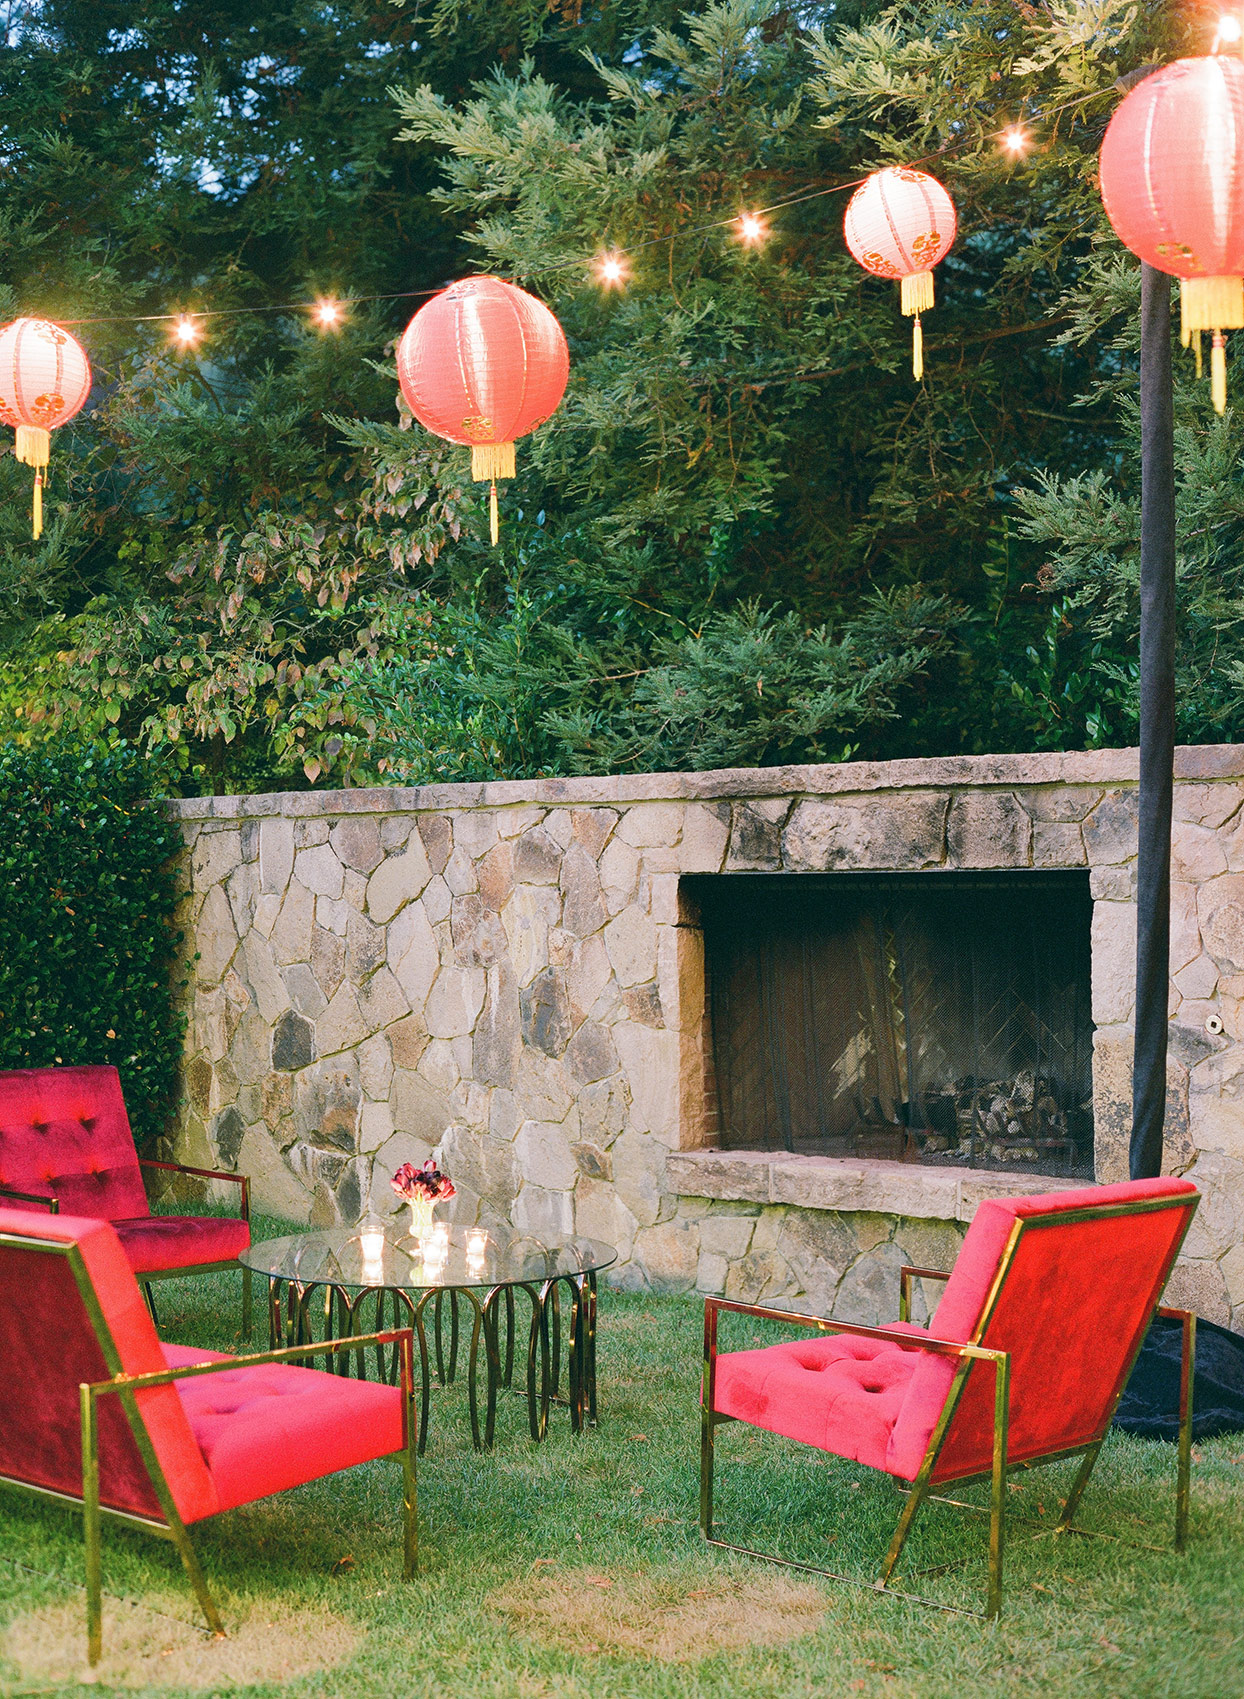 Wedding lounge area with capiz lanterns, red chairs, and fireplace